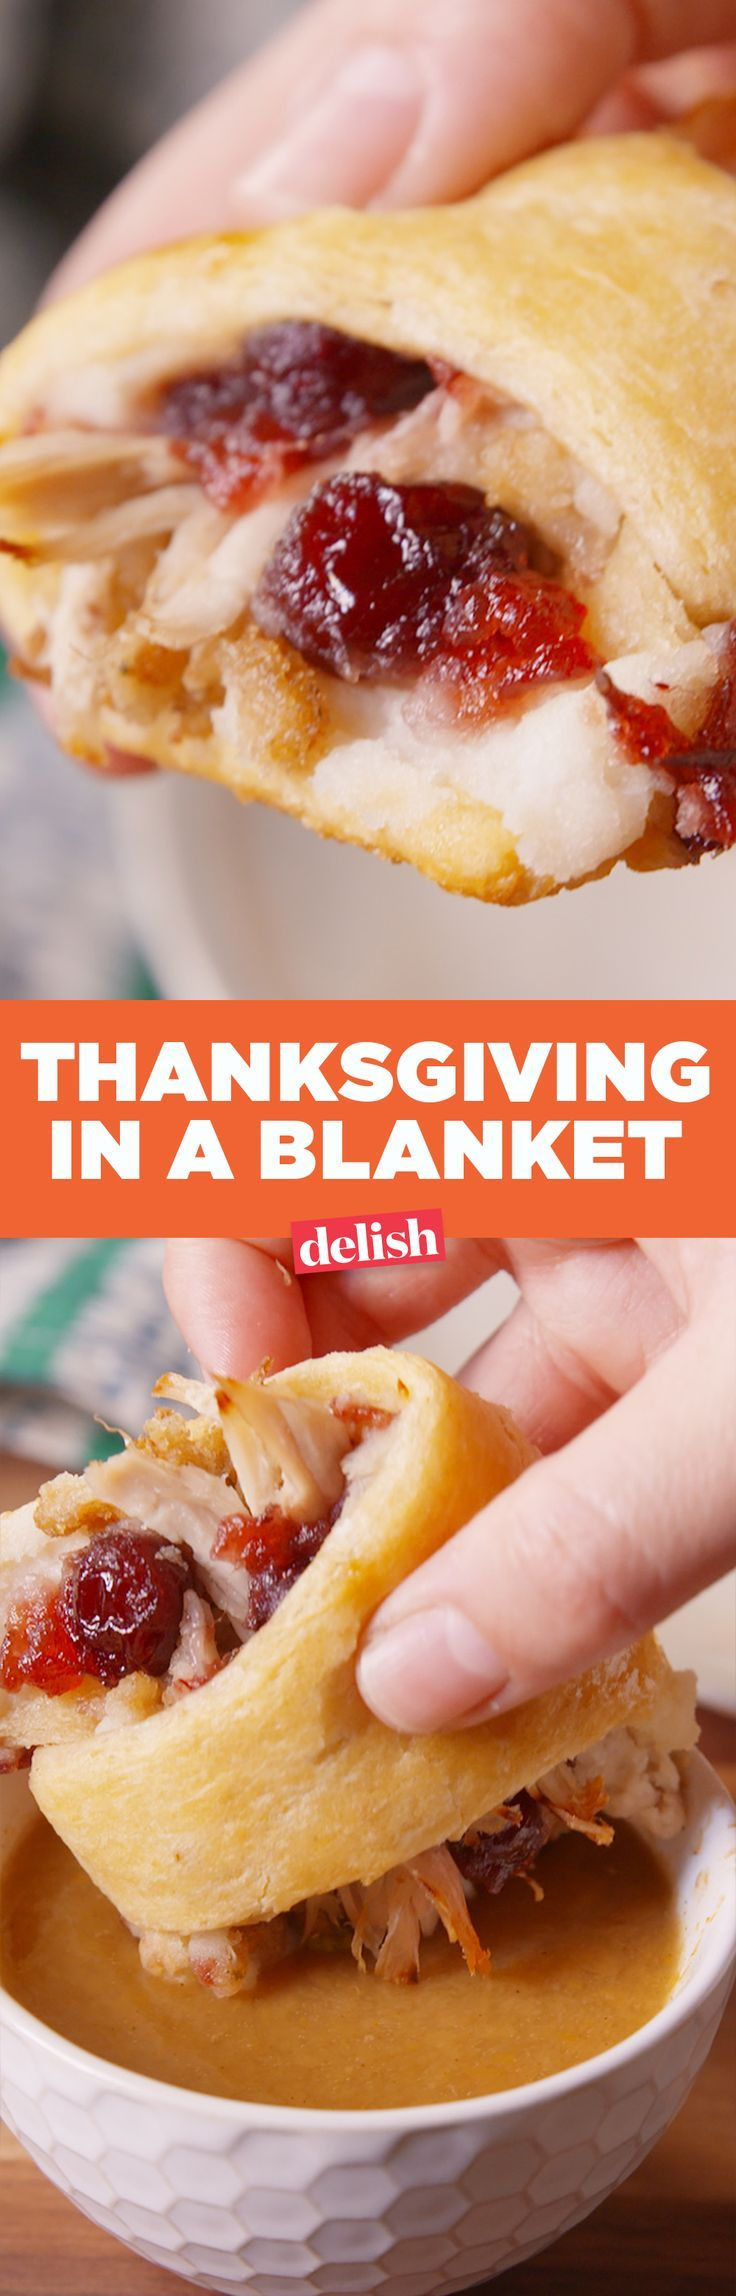 Thanksgiving In A Blanket #thanksgivingrecipes